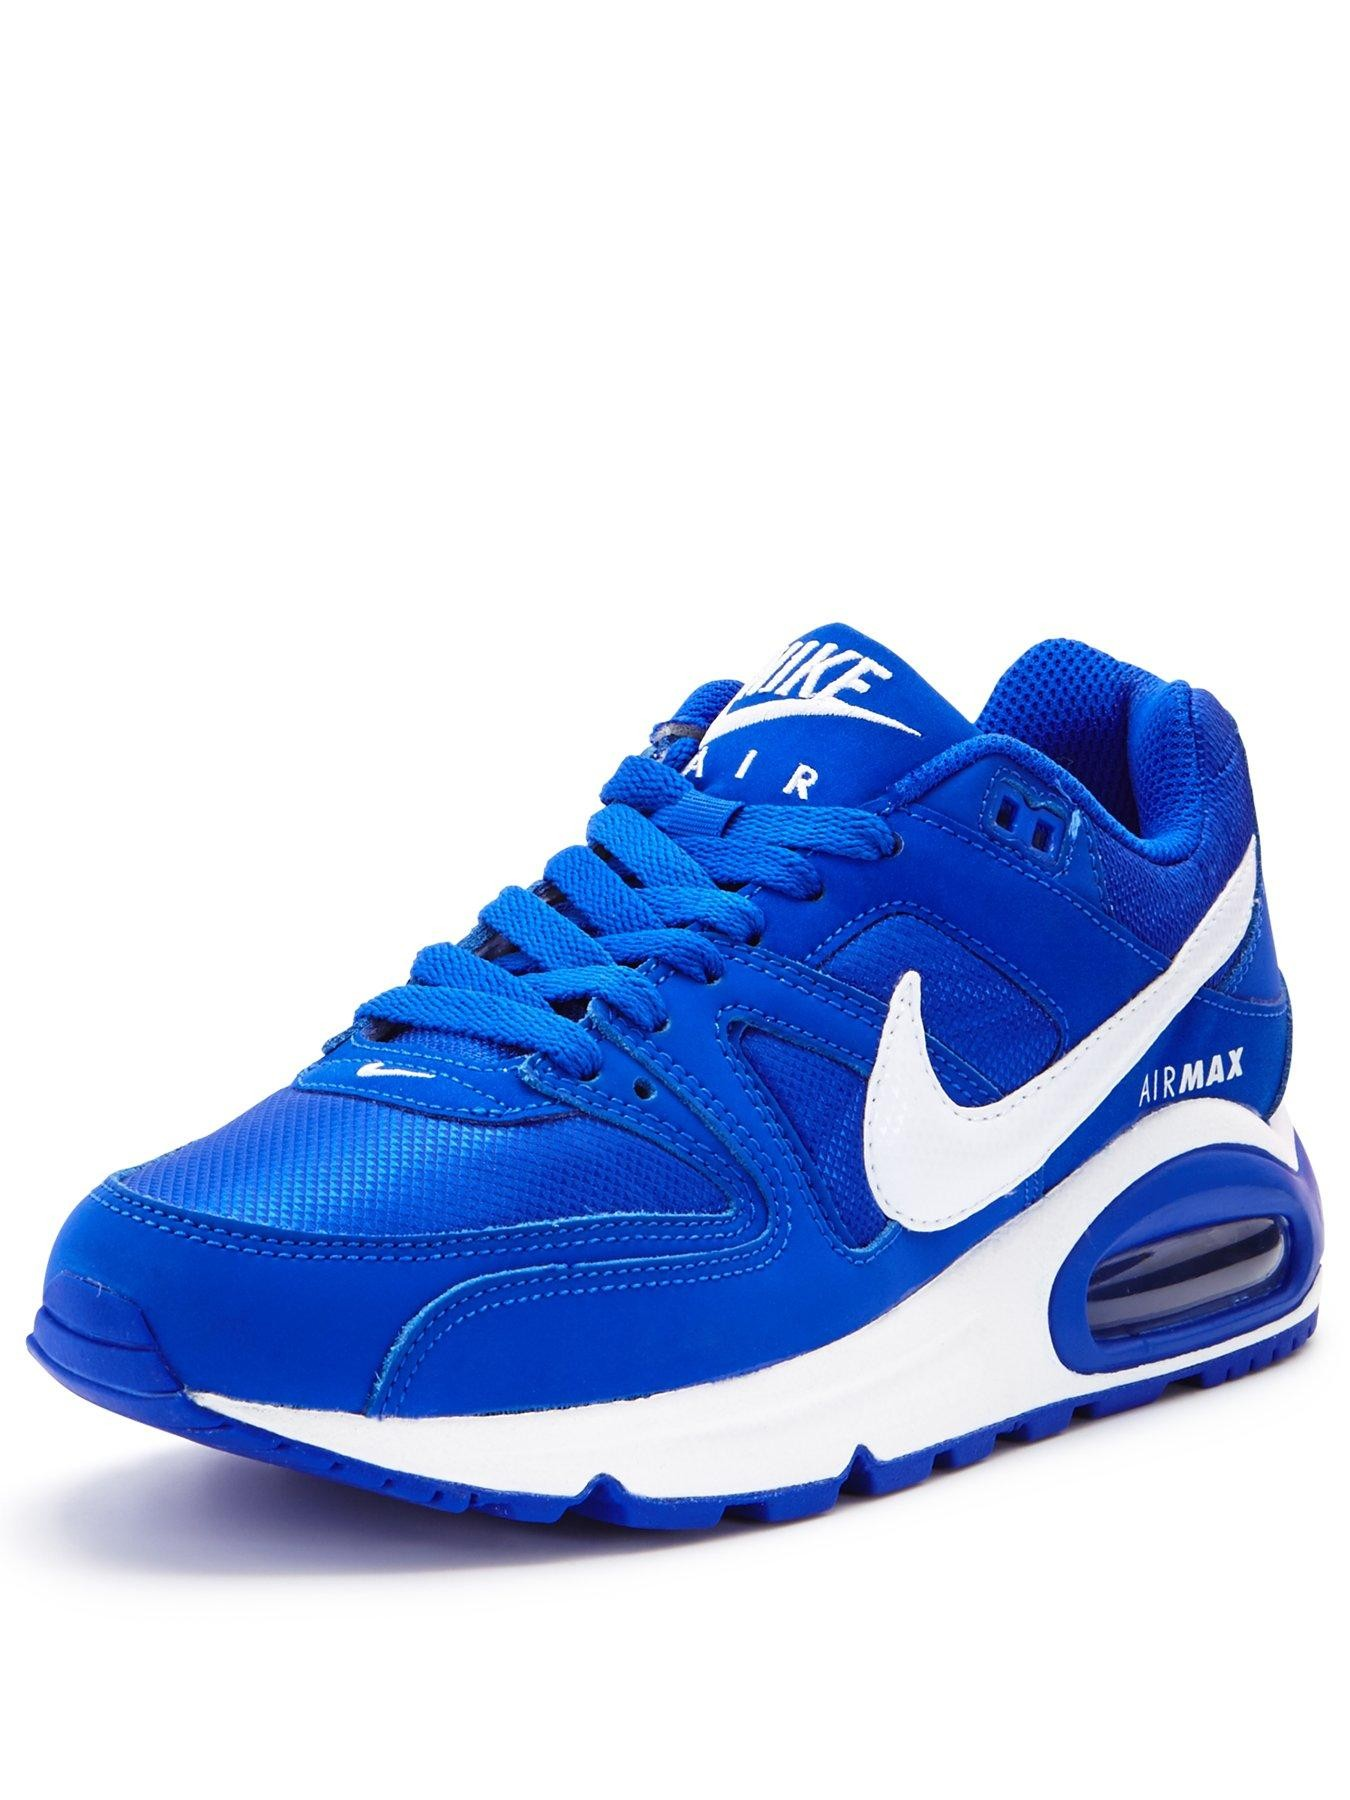 2018 Das Beste Nike Air Max Command Damen DBN17